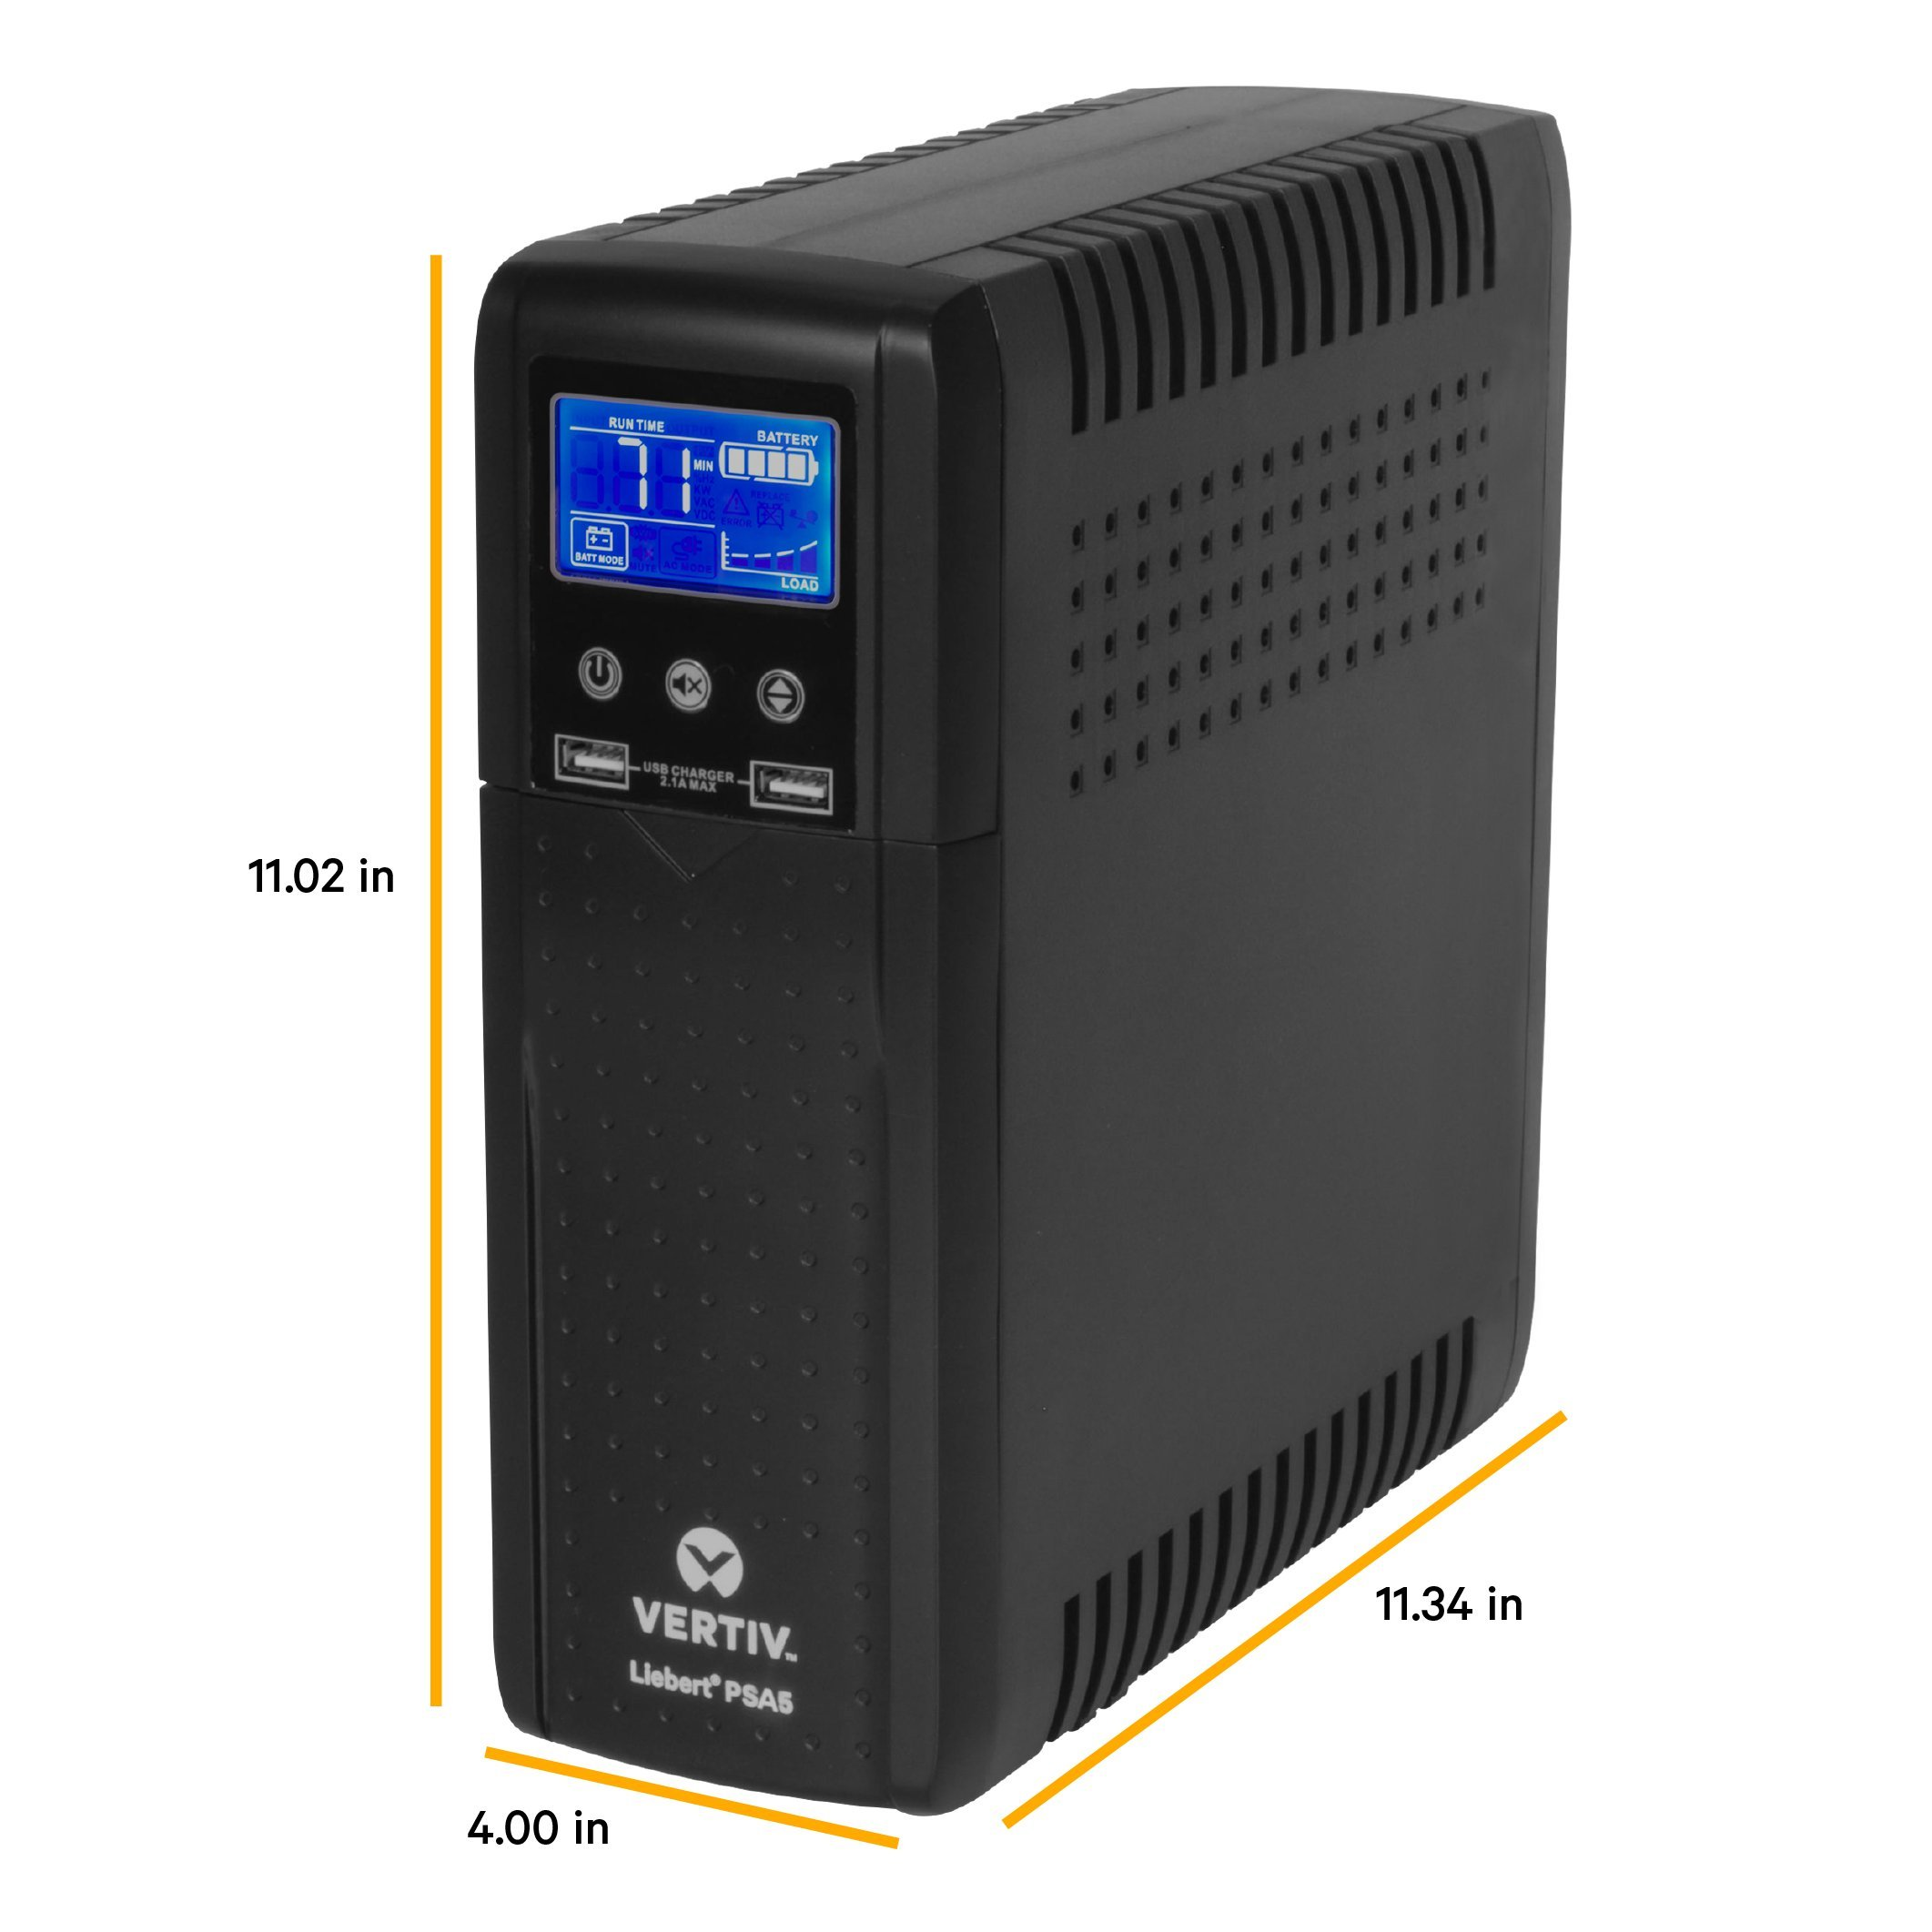 Vertiv Liebert PSA5 700VA 420W line-Interactive UPS with AVR Technology and Battery Backup, 10 outlets and Three-Year, Full Unit Replacement Warranty (PSA5-700MT120) by Liebert (Image #3)